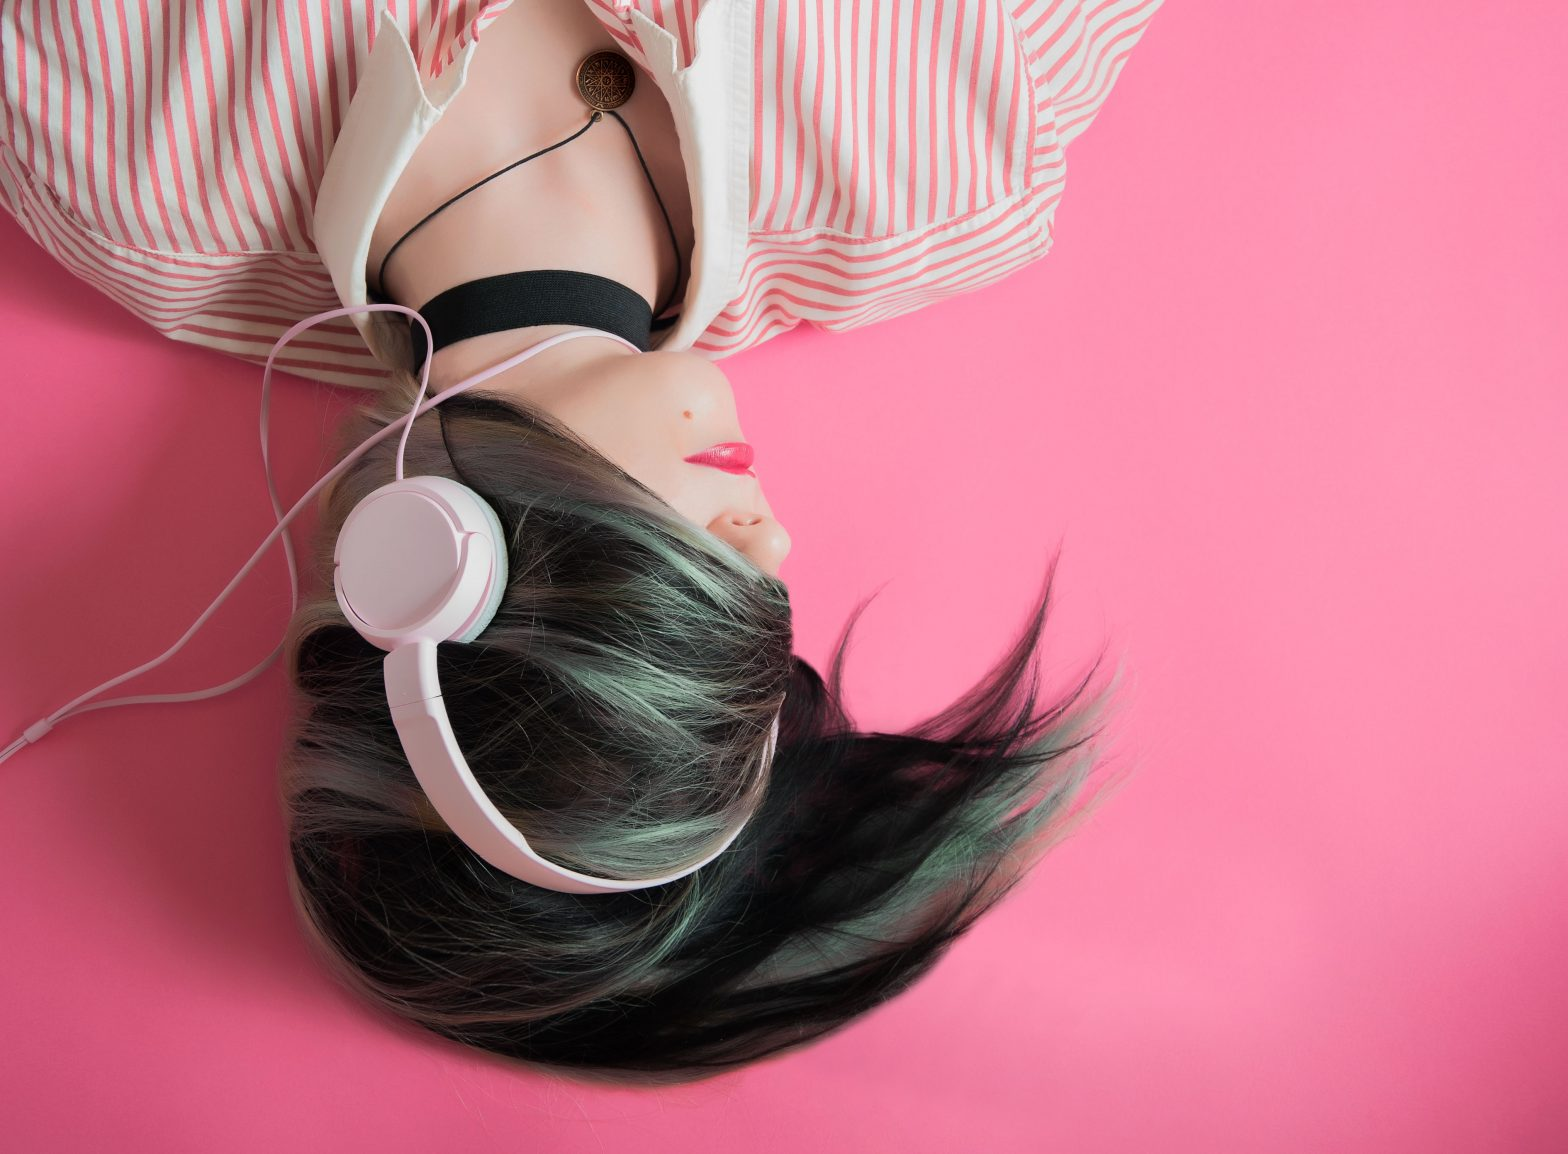 Upside-down image of a woman with green hair listening to headphones.